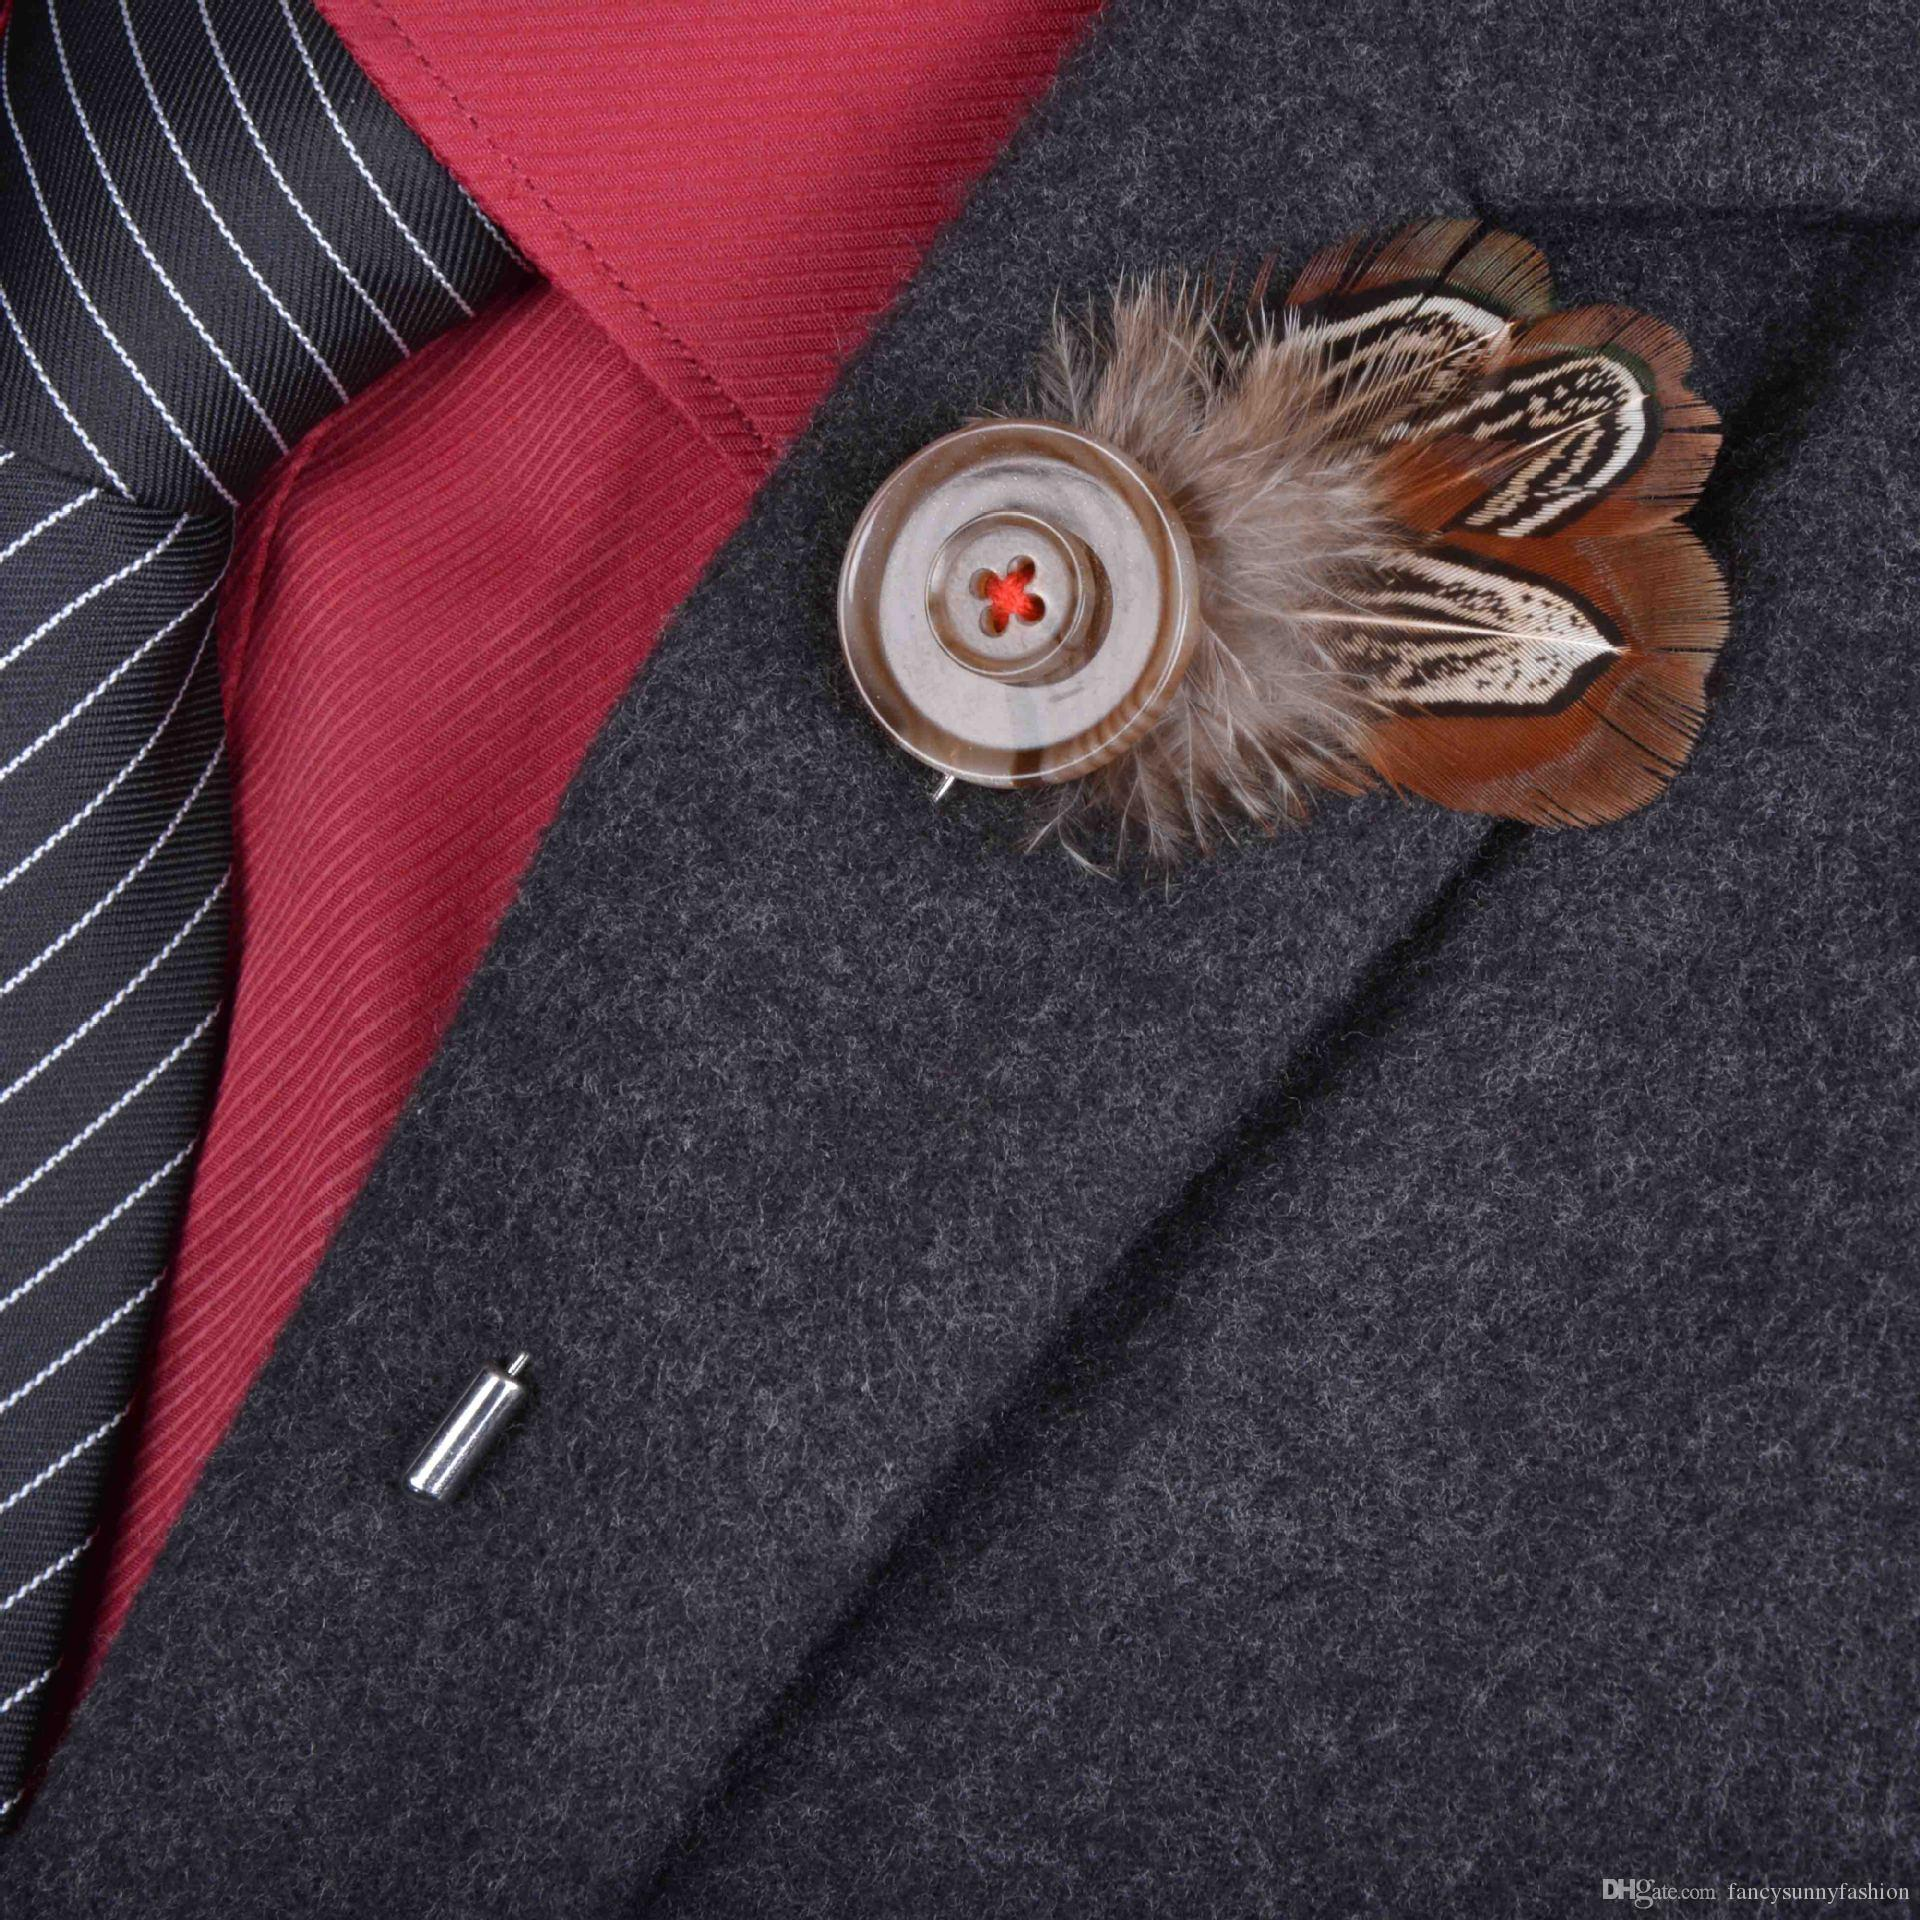 tie brooch brooches handmade discount suit livemaster rubles fabric black on classic buy online shop item